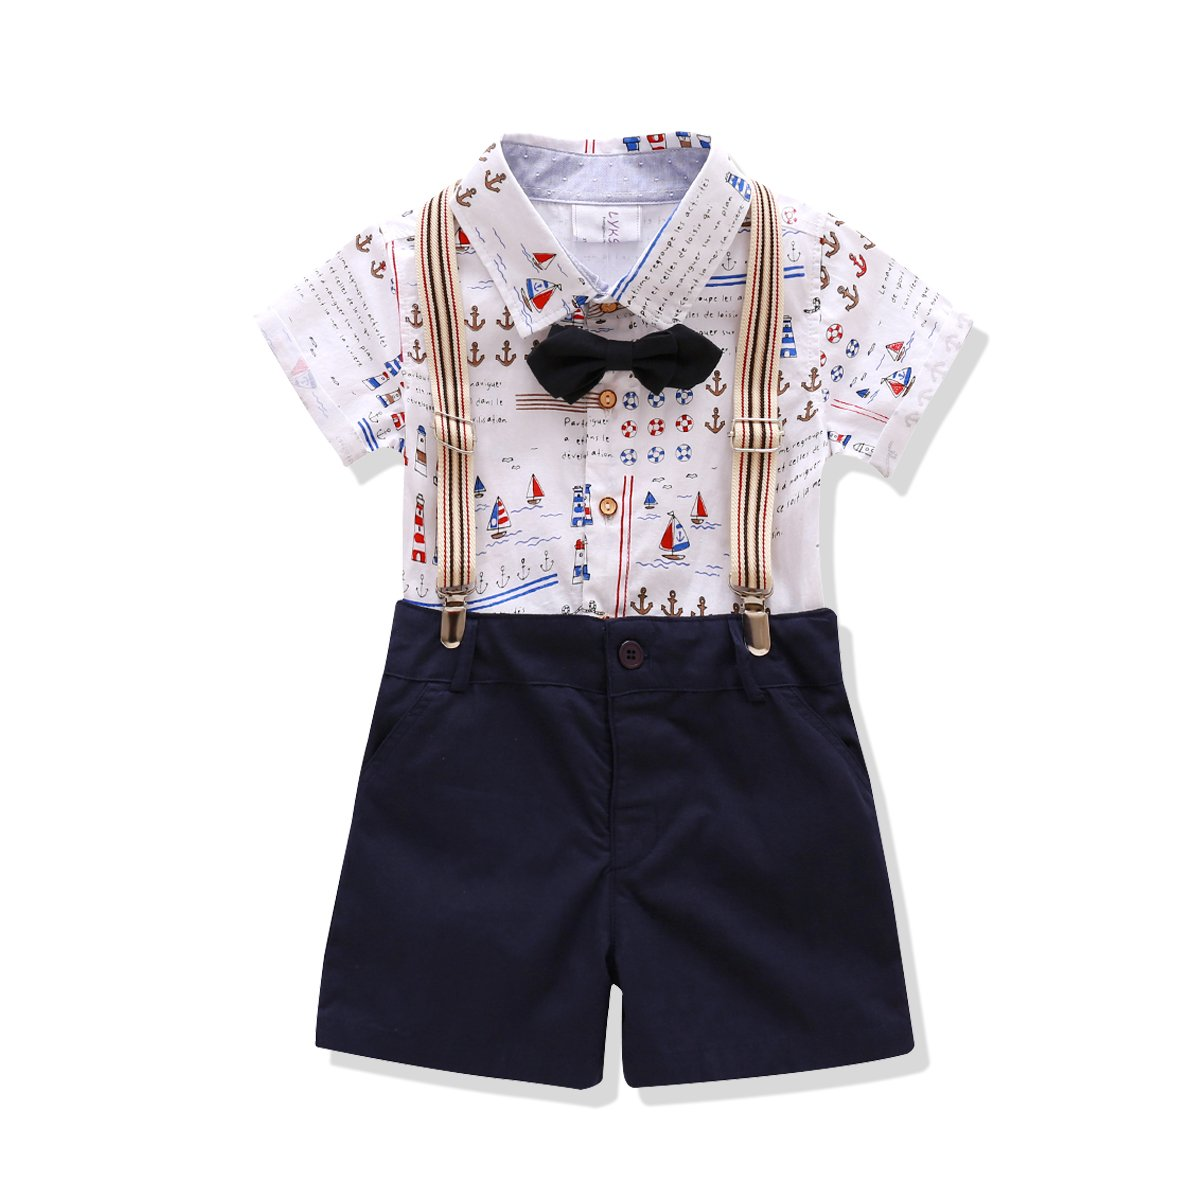 little boys Outfit,Bowtie Gentleman Suspender Clothing Set(7T) by Lkysaw